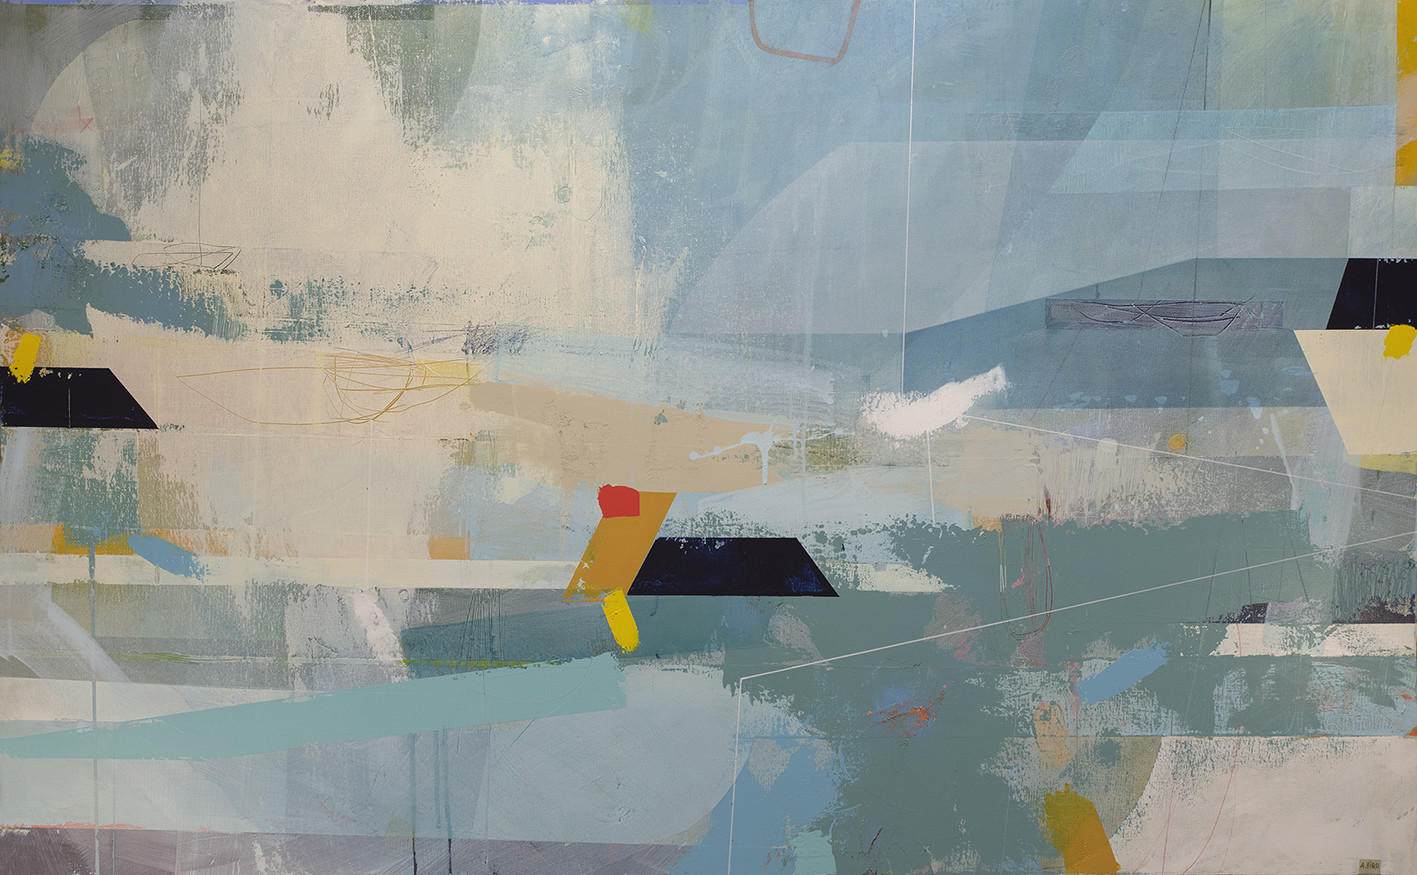 <span class=&#34;link fancybox-details-link&#34;><a href=&#34;/artists/77-andrew-bird/works/6208-andrew-bird-wanderlust-2019/&#34;>View Detail Page</a></span><div class=&#34;artist&#34;><strong>Andrew Bird</strong></div> <div class=&#34;title&#34;><em>Wanderlust</em>, 2019</div> <div class=&#34;signed_and_dated&#34;>signed, titled and dated on reverse</div> <div class=&#34;medium&#34;>acrylic on canvas</div> <div class=&#34;dimensions&#34;>h 76 x w 122 cm<br /> 29 7/8 x 48 1/8 in</div><div class=&#34;price&#34;>£3,200.00</div><div class=&#34;copyright_line&#34;>Own Art: £ 250 x 10 Months, 0% APR + £700</div>